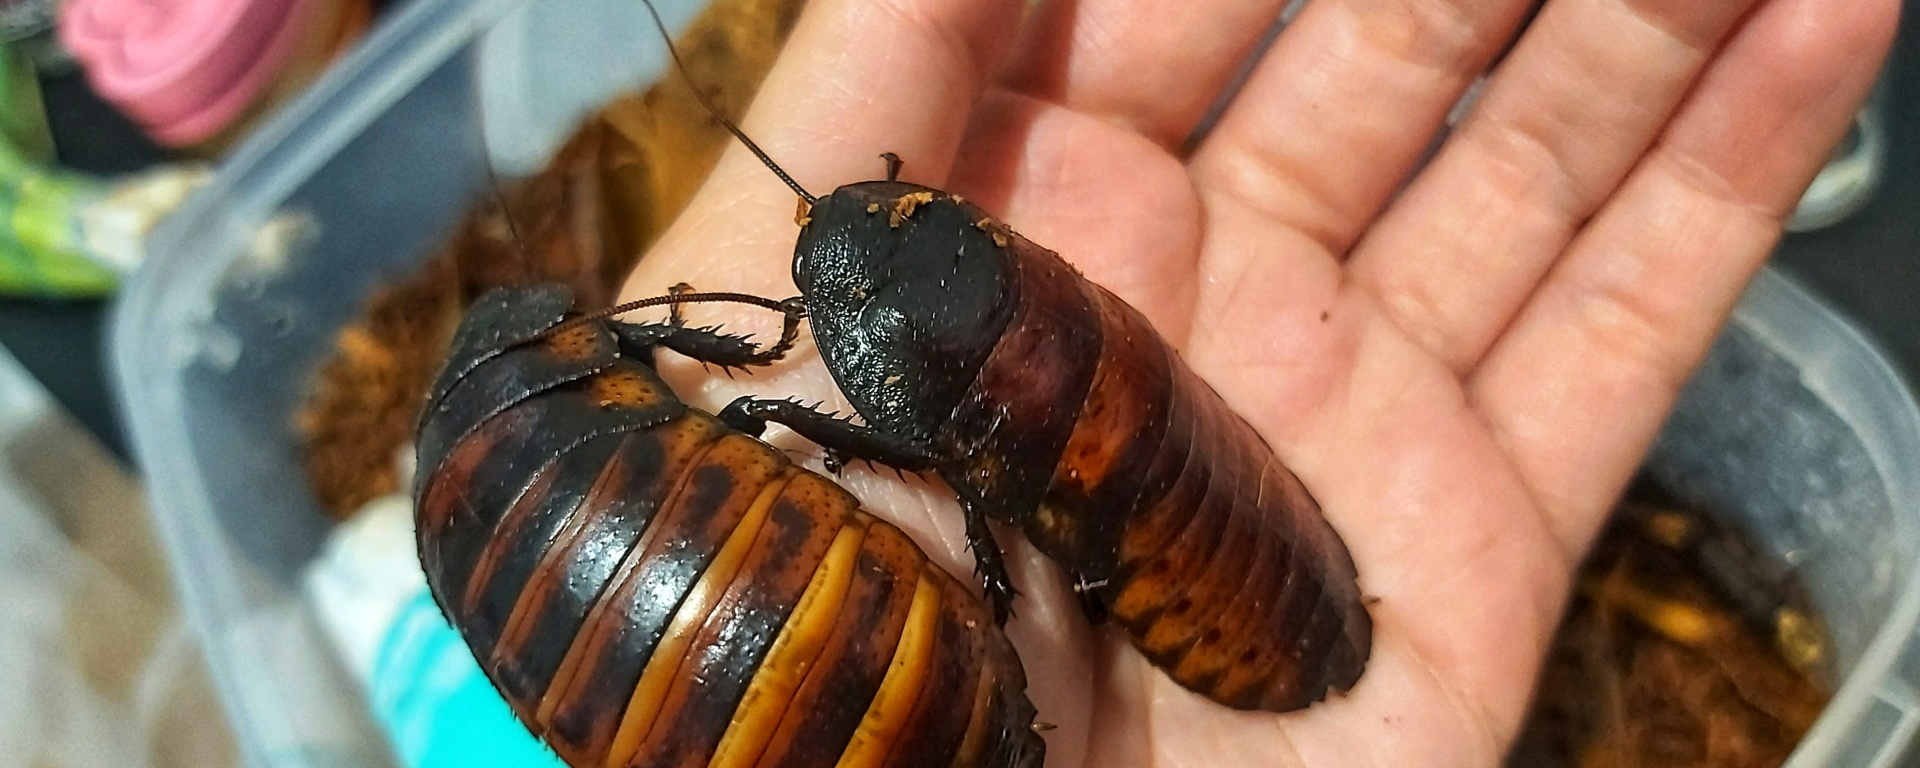 Two adult female Madagascan cockroaches on a hand